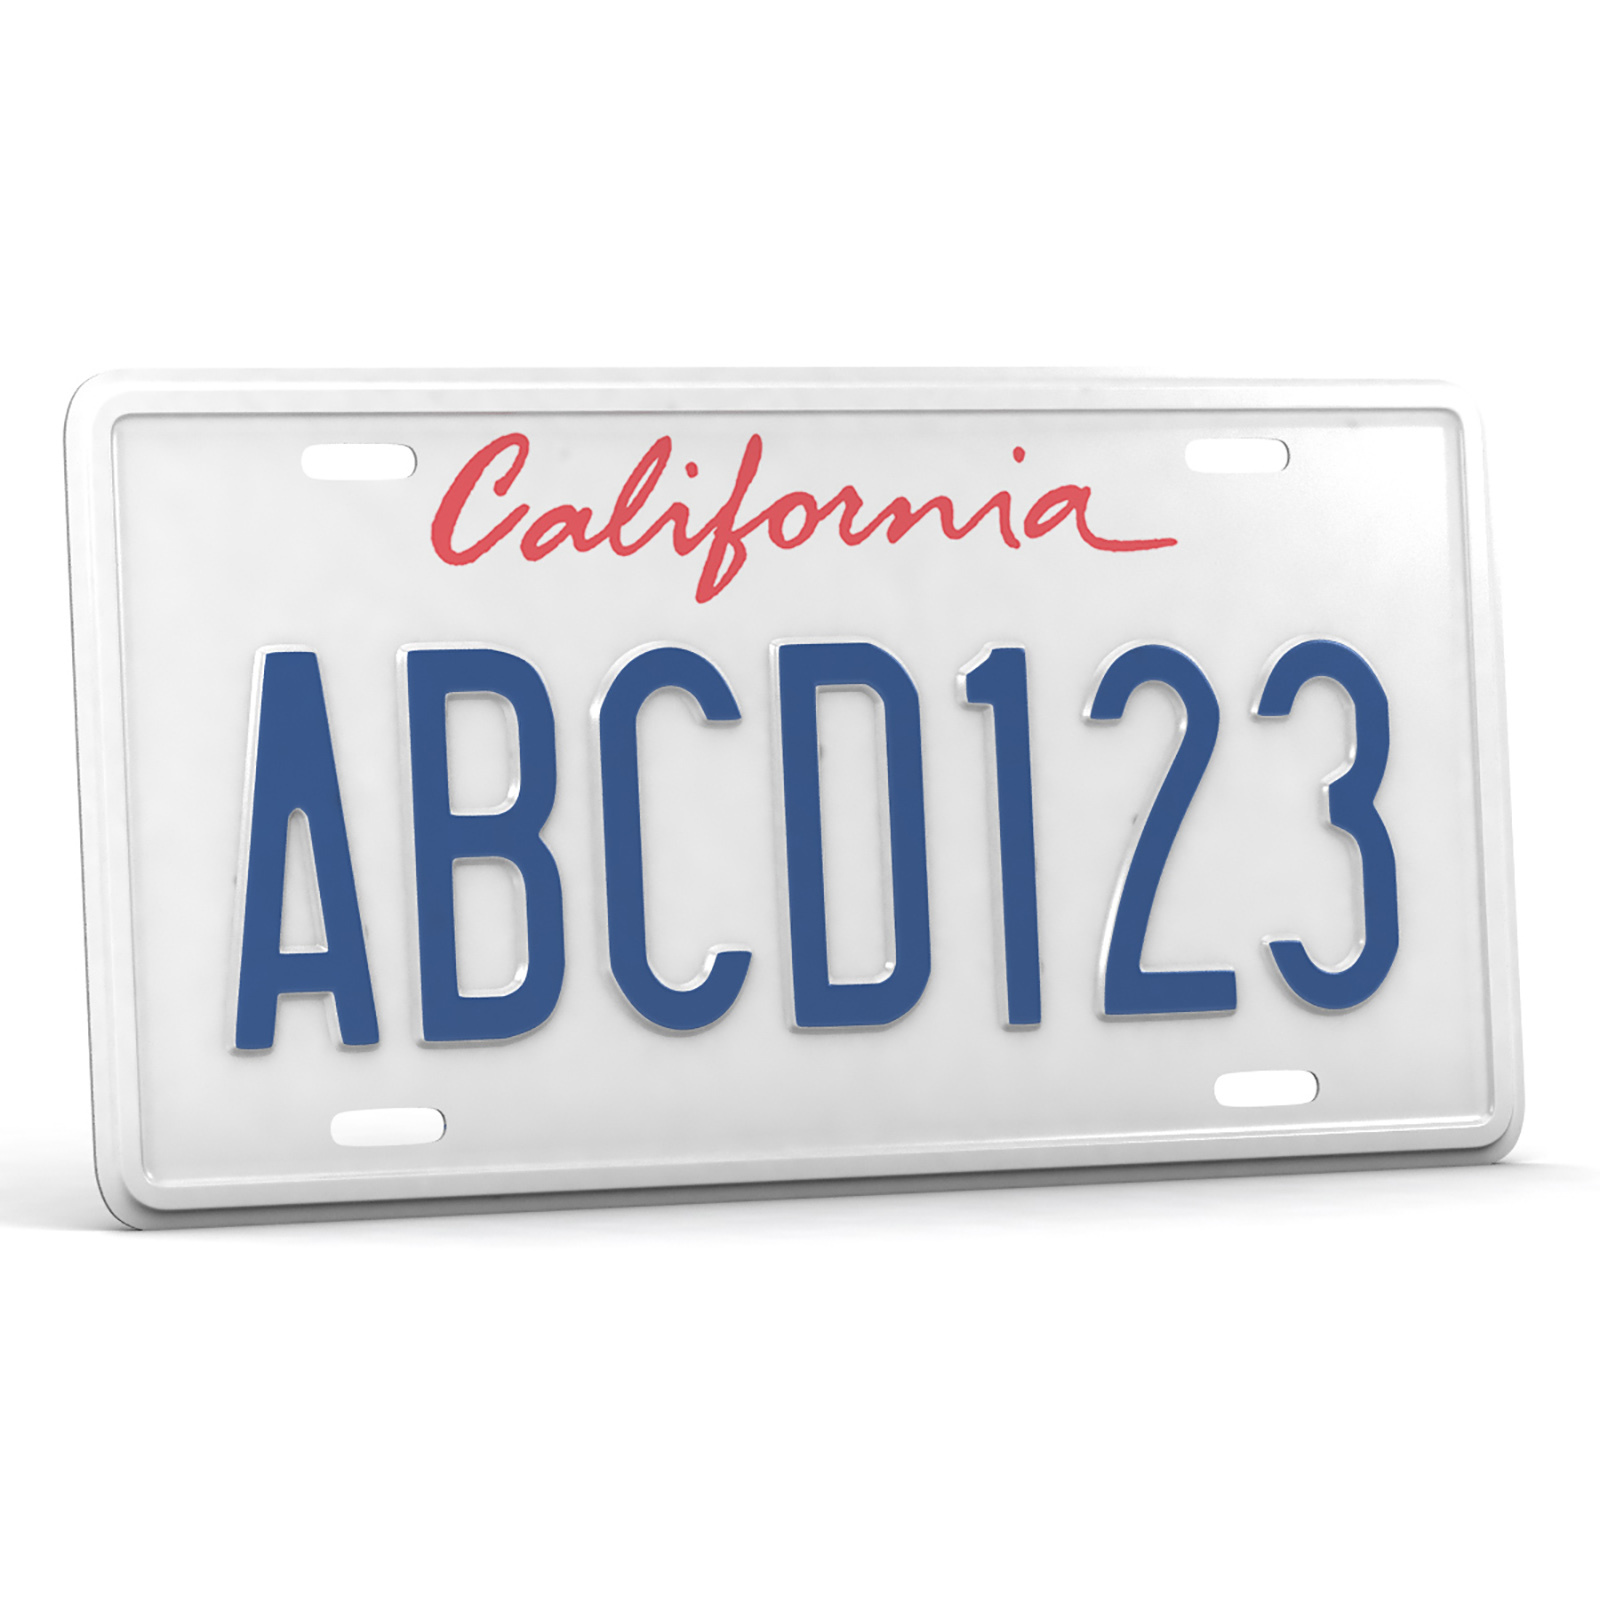 CAR LICENSE PLATE - Extended License